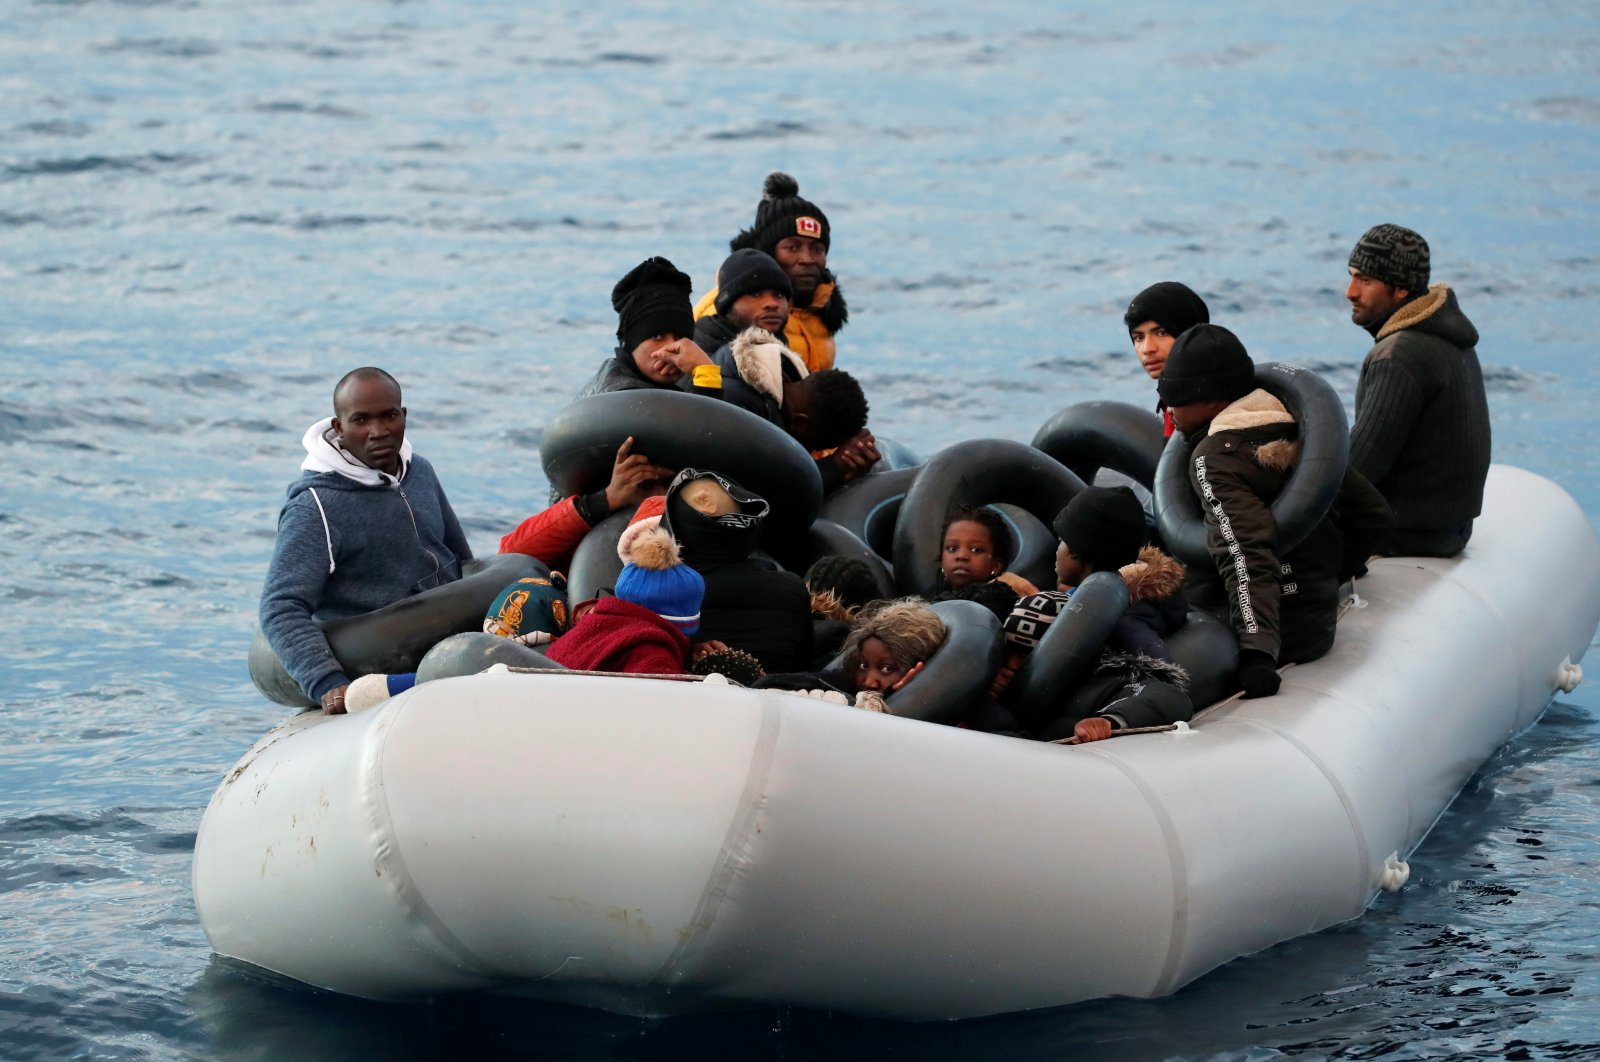 Migrants are seen on a dinghy following a failed attempt to cross to the Greek island of Lesbos, as a Turkish coast guard boat approaches them, on the waters of the North Aegean Sea, off the shores of Çanakkale, Turkey, March 6, 2020. (Reuters File Photo)